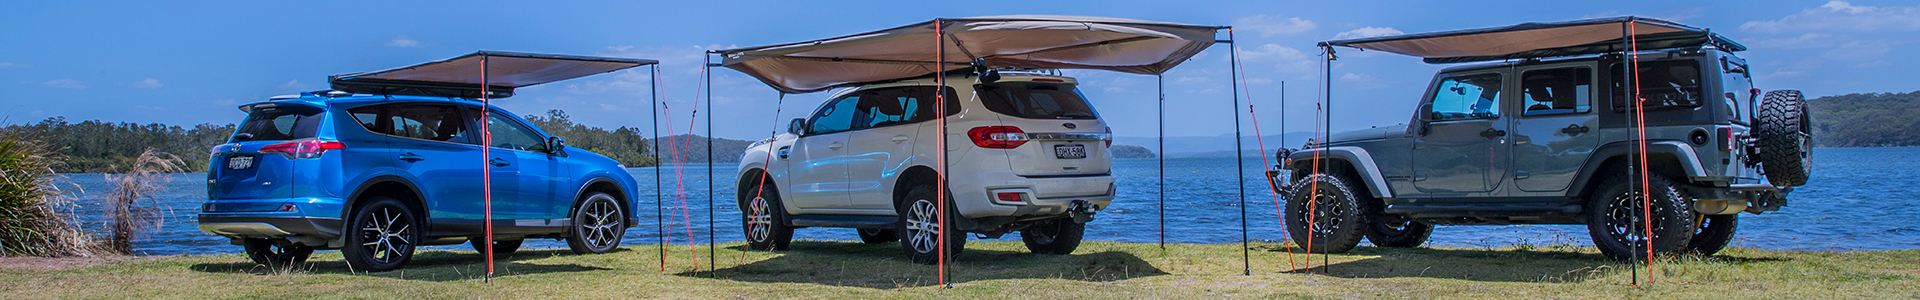 Awnings : vehicle awnings canopies - memphite.com